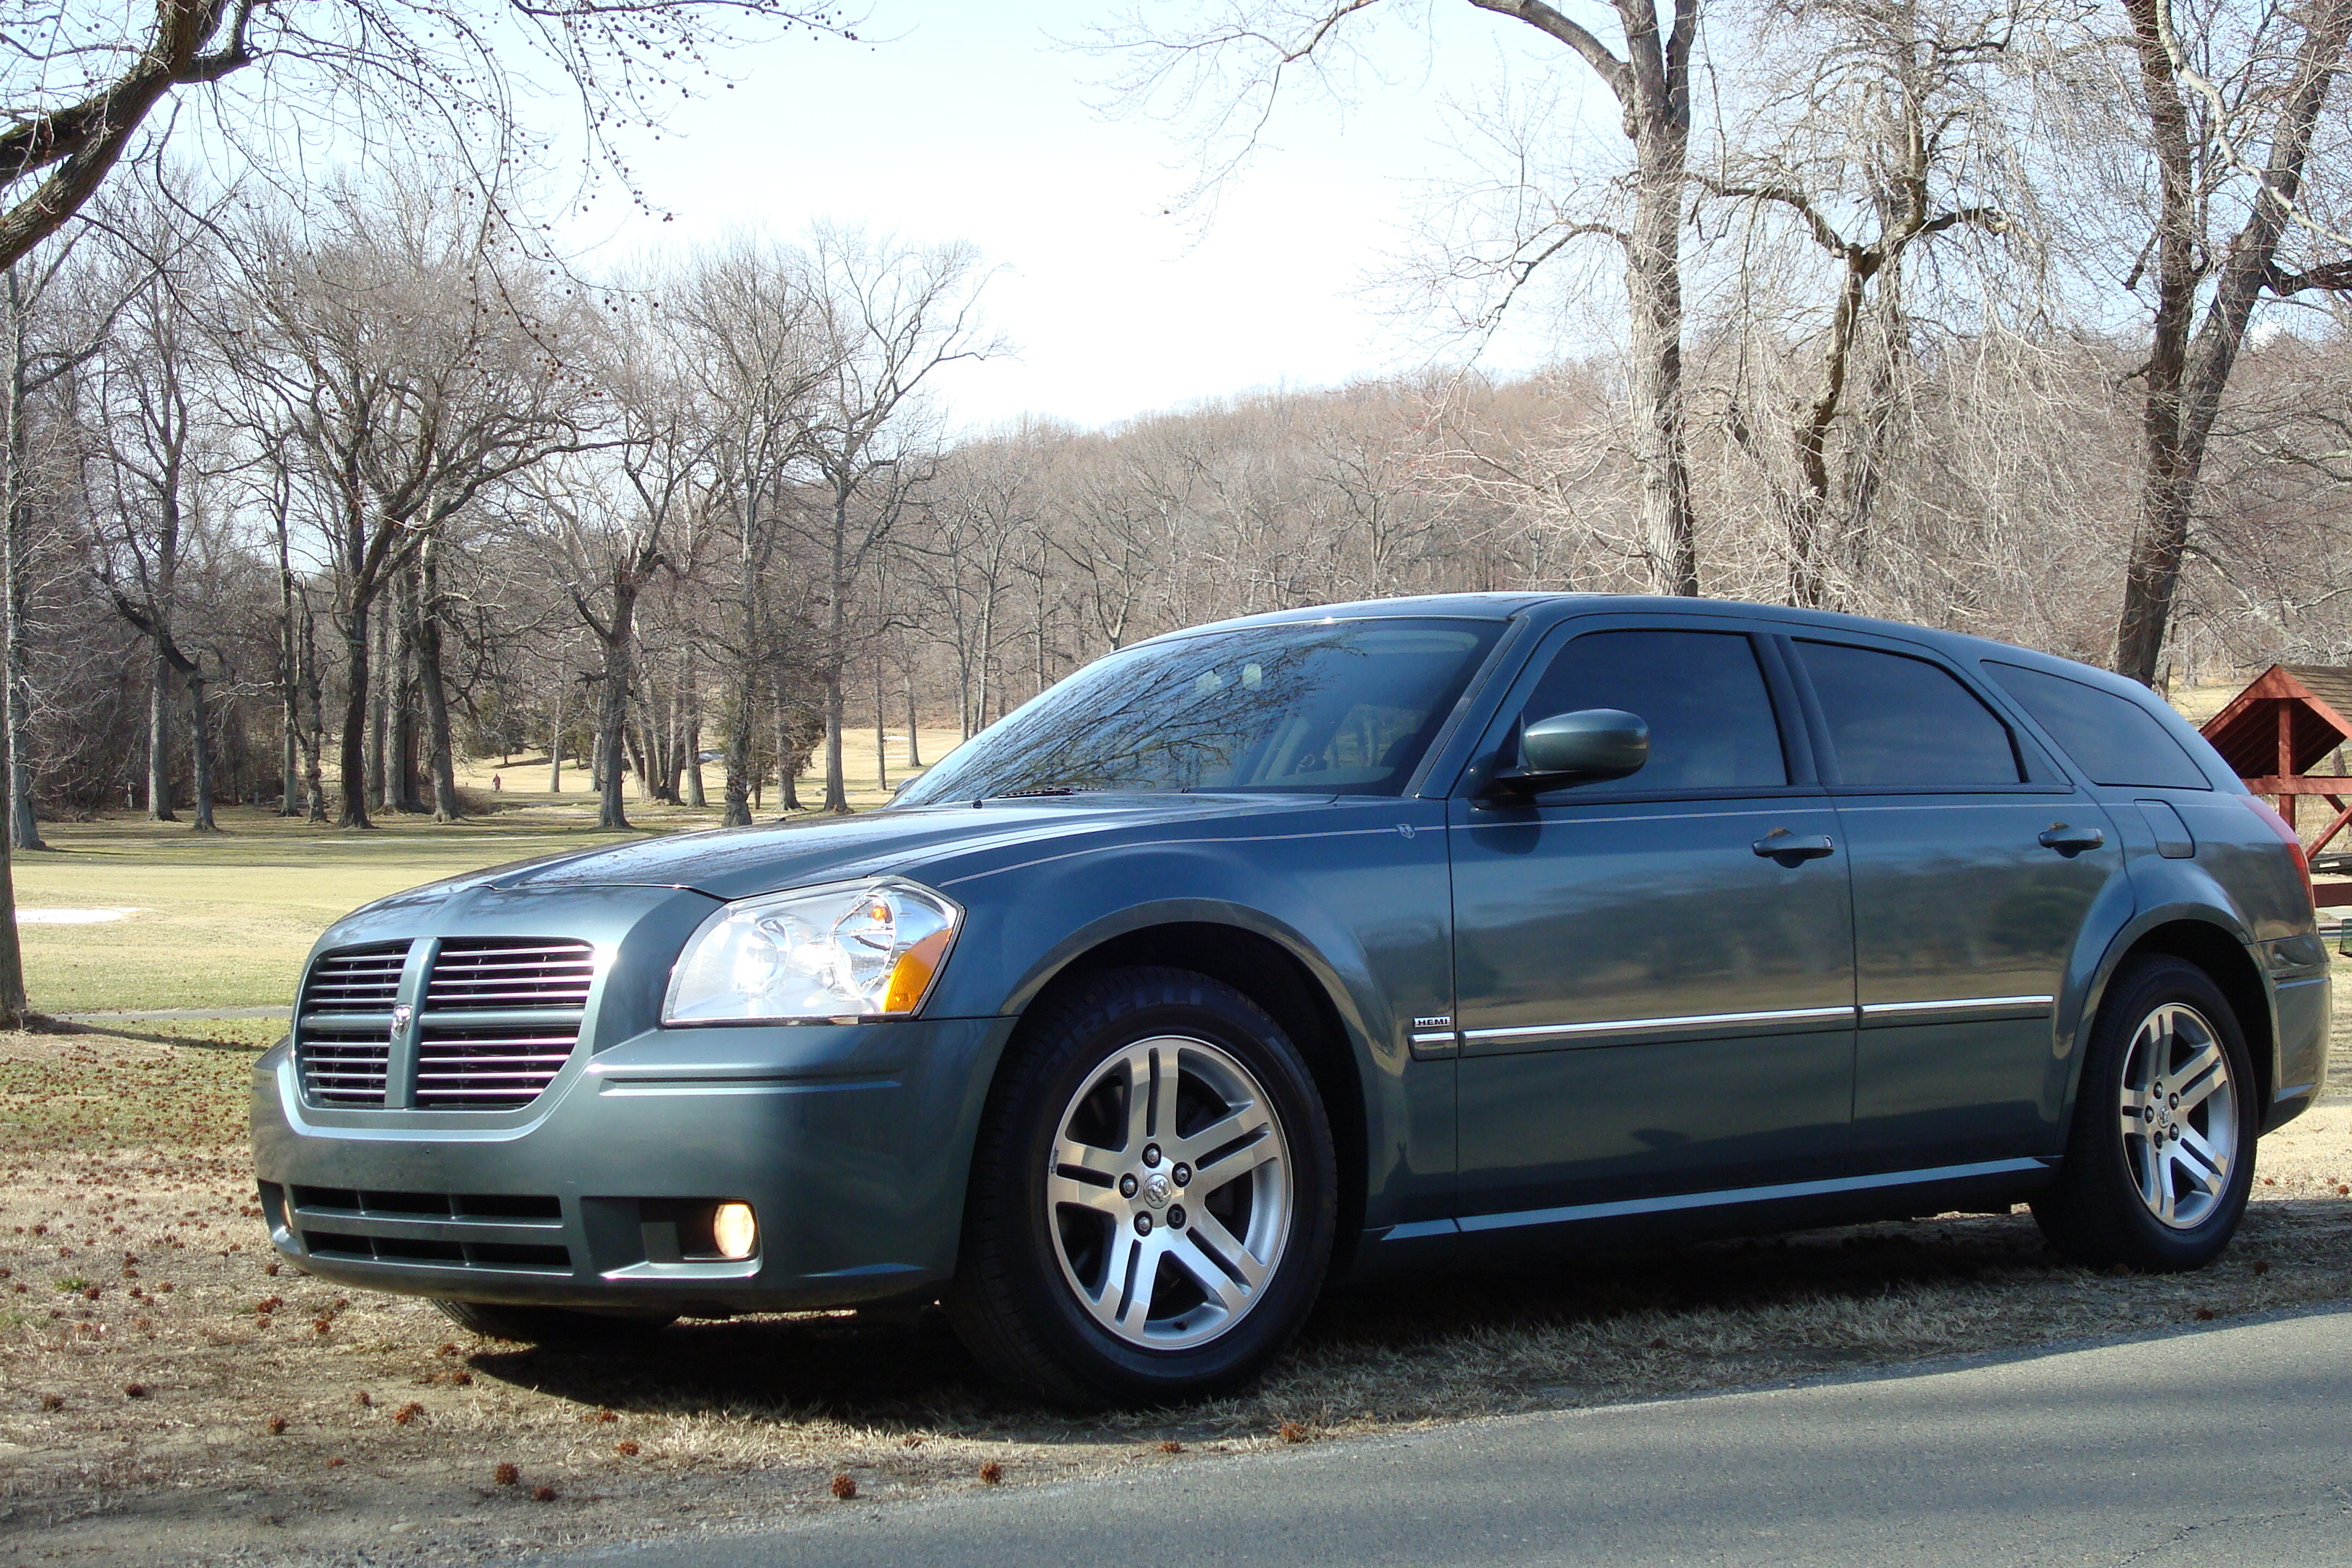 notorious170 2005 Dodge Magnum 12639143